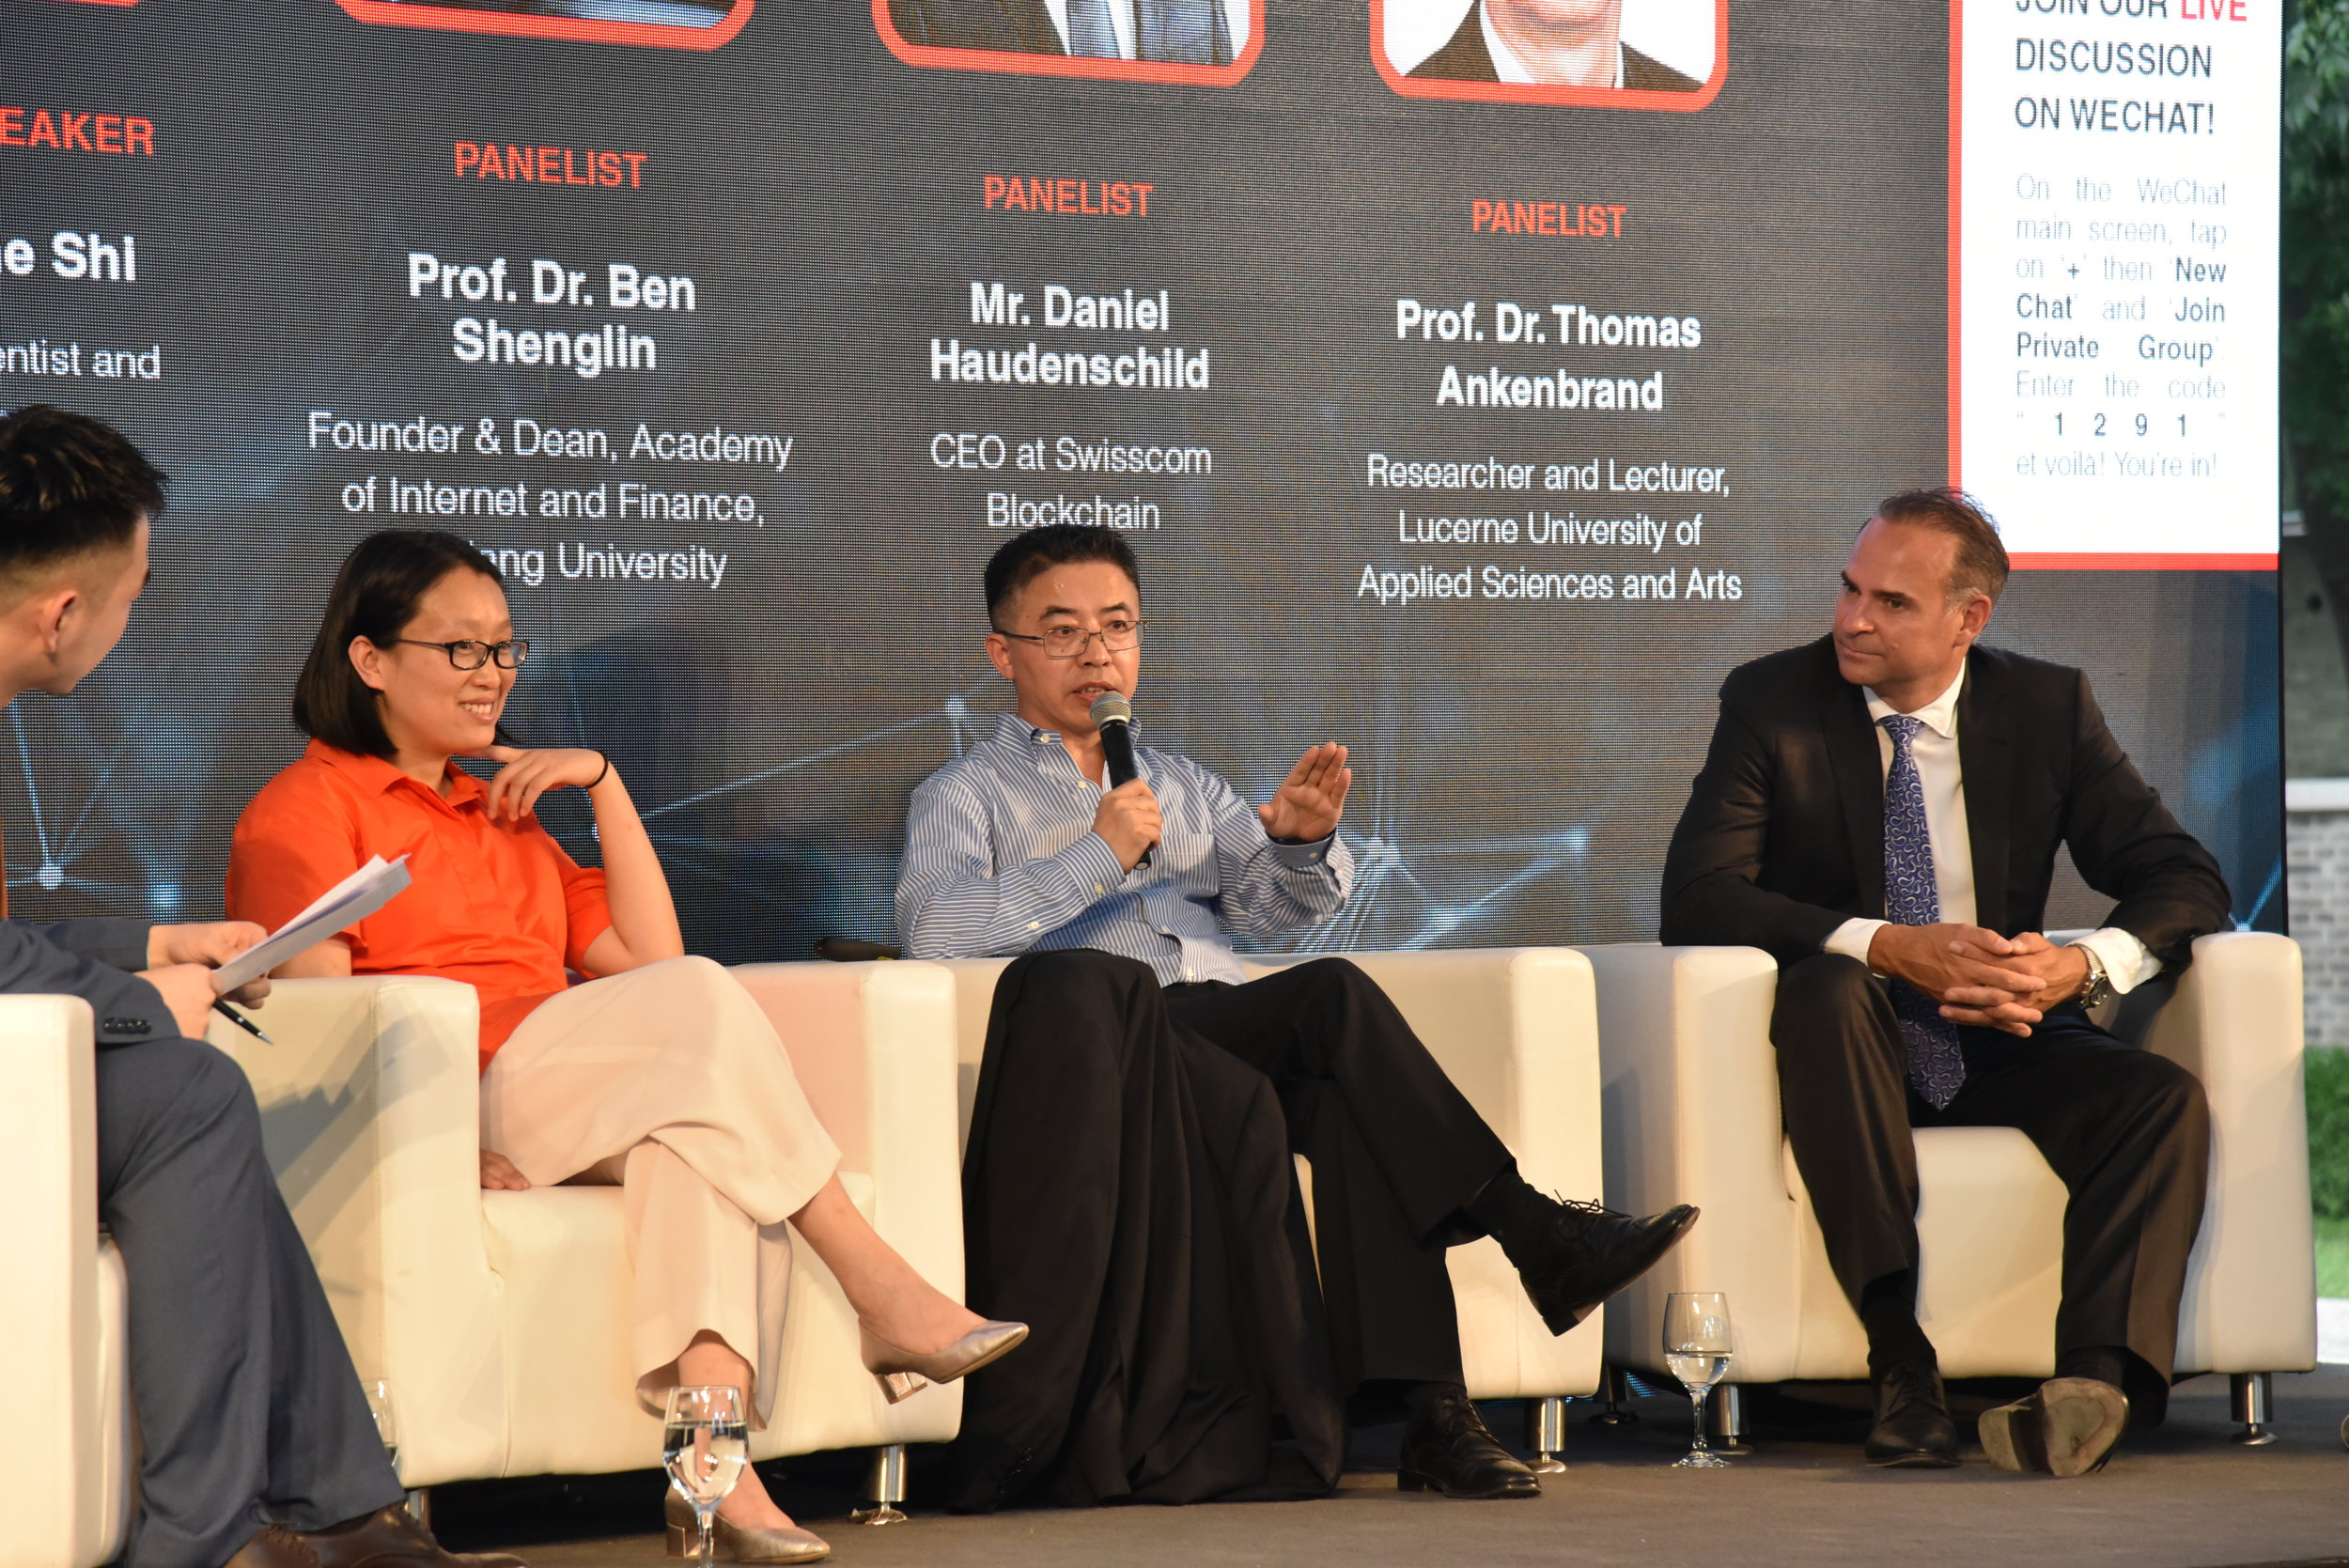 The panelists discussed topics revolving the application of blockchain technology in Switzerland and in China.